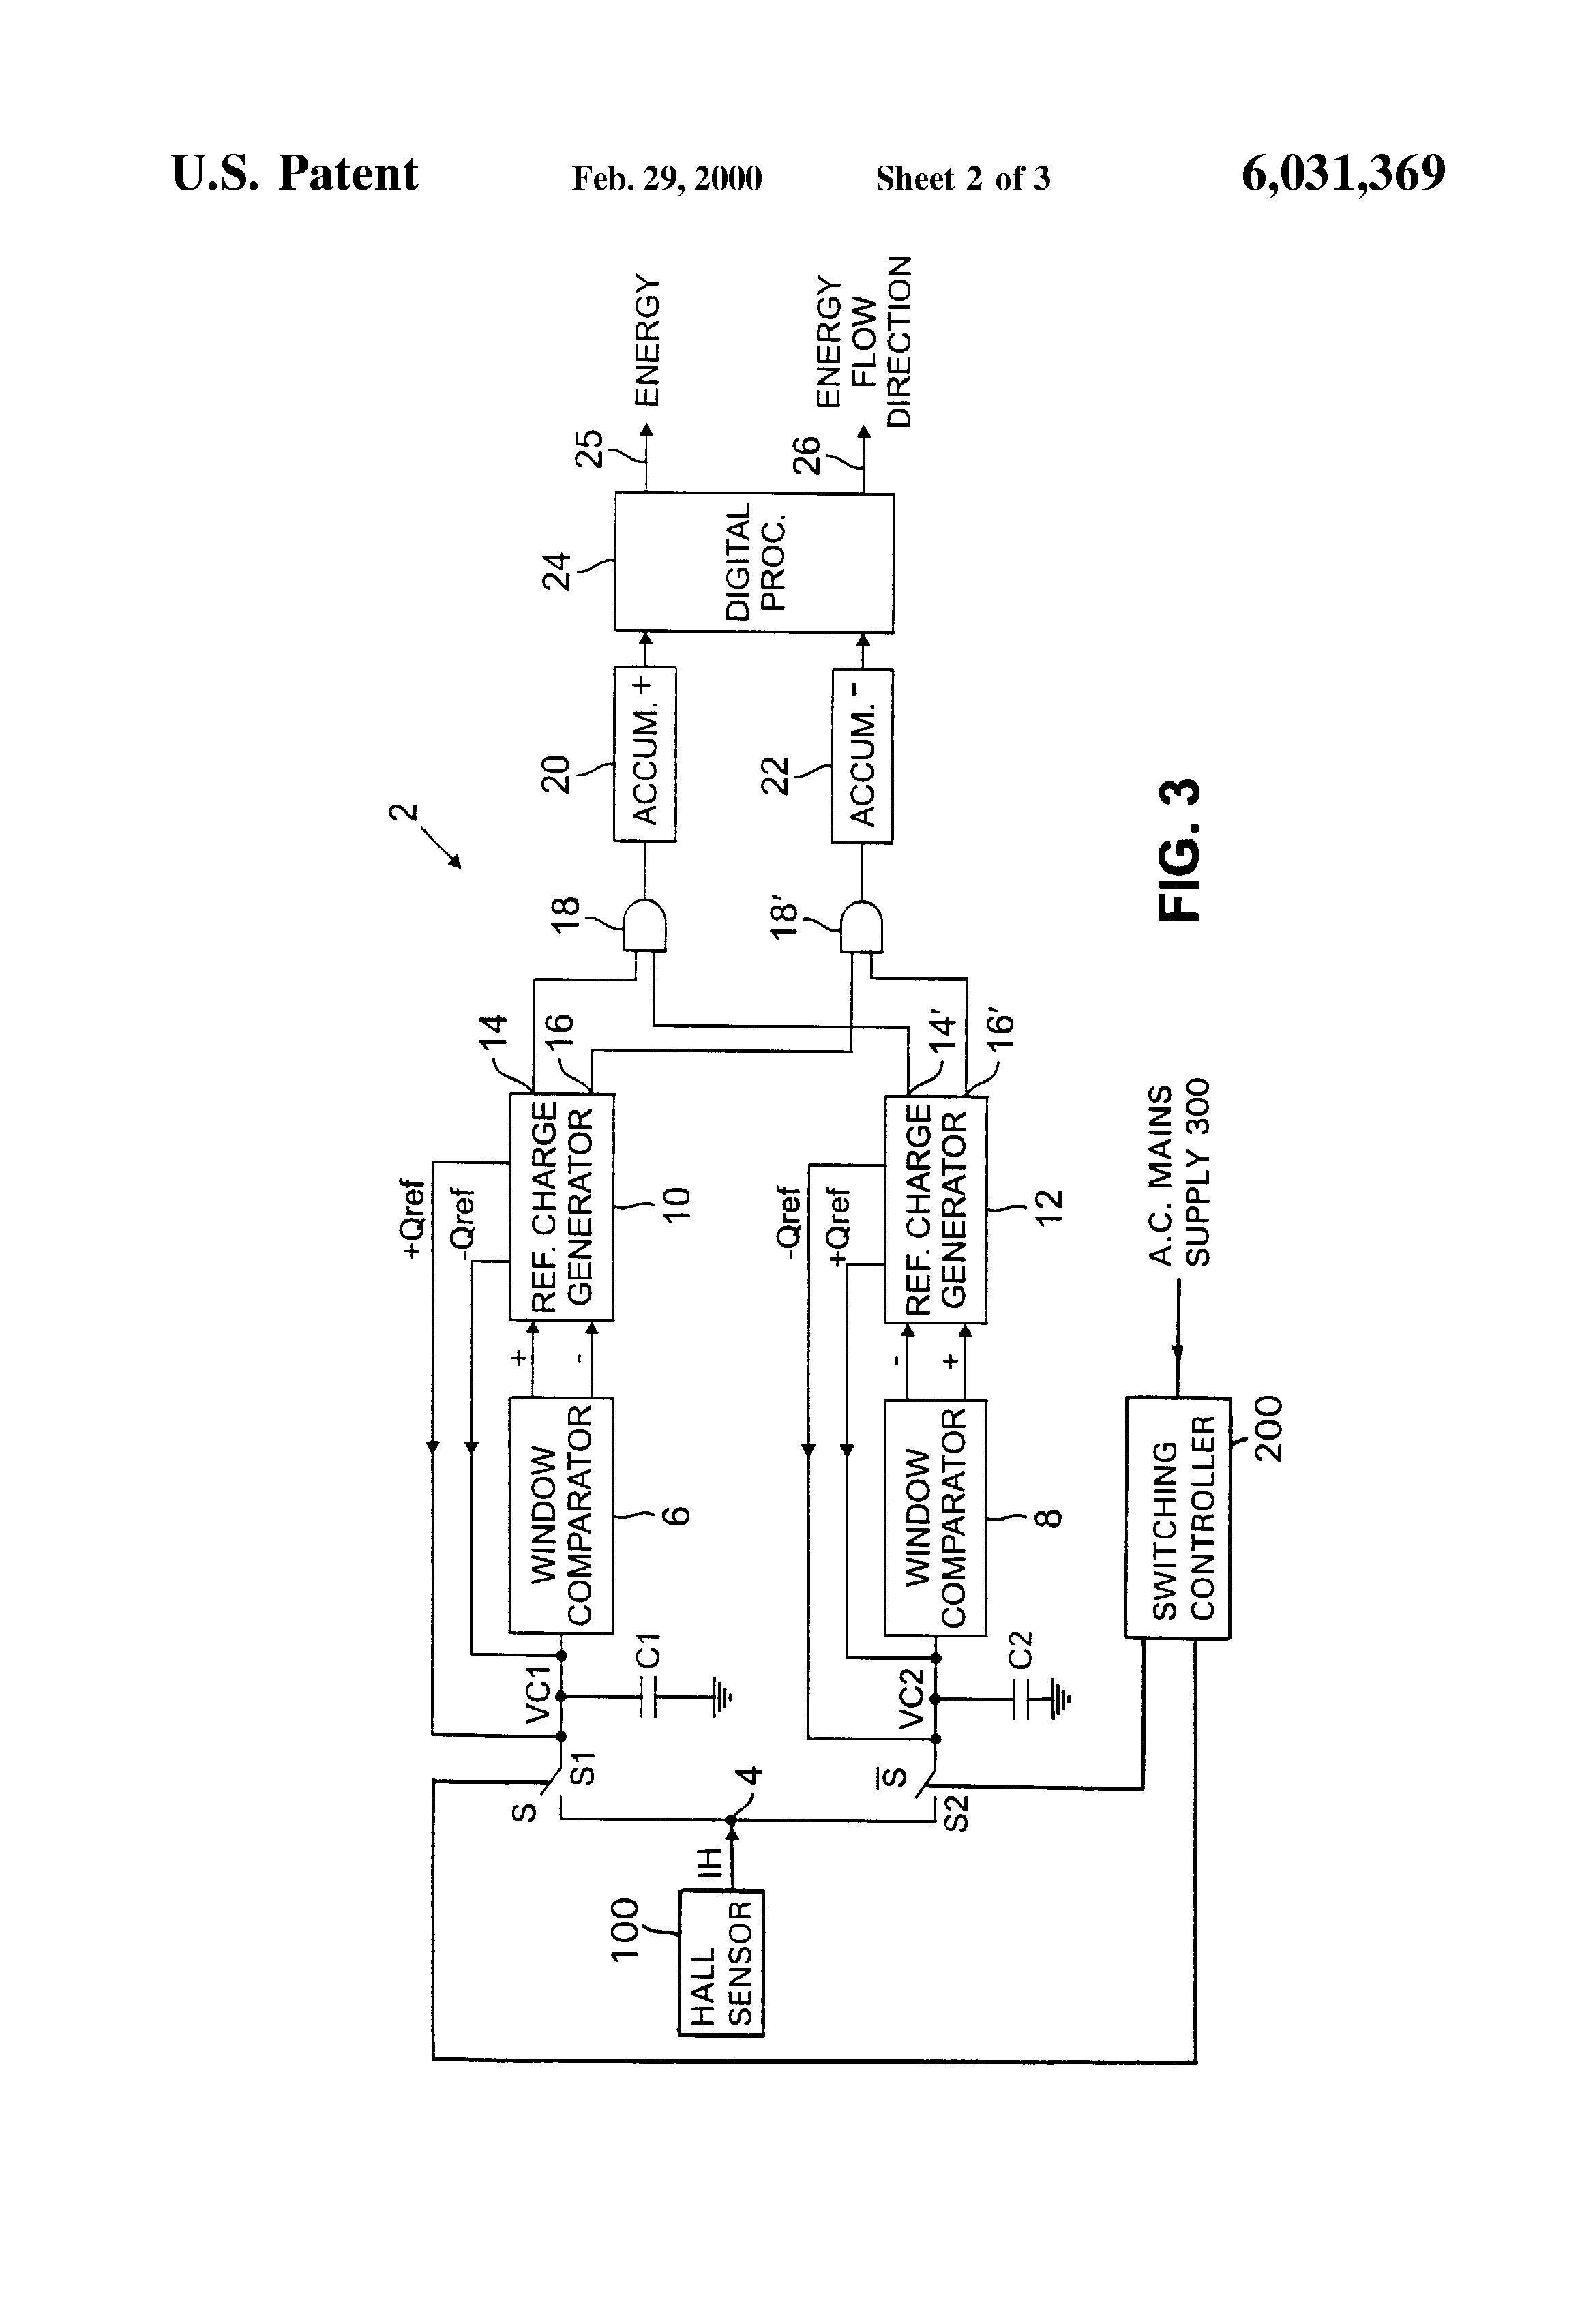 Patent Us4972141 Watthour Meter Or Salt Water Purification Systems. Patent Us6031369 Electricity. Wiring. Wire 3 Diagram Motor Phaselectric At Scoala.co